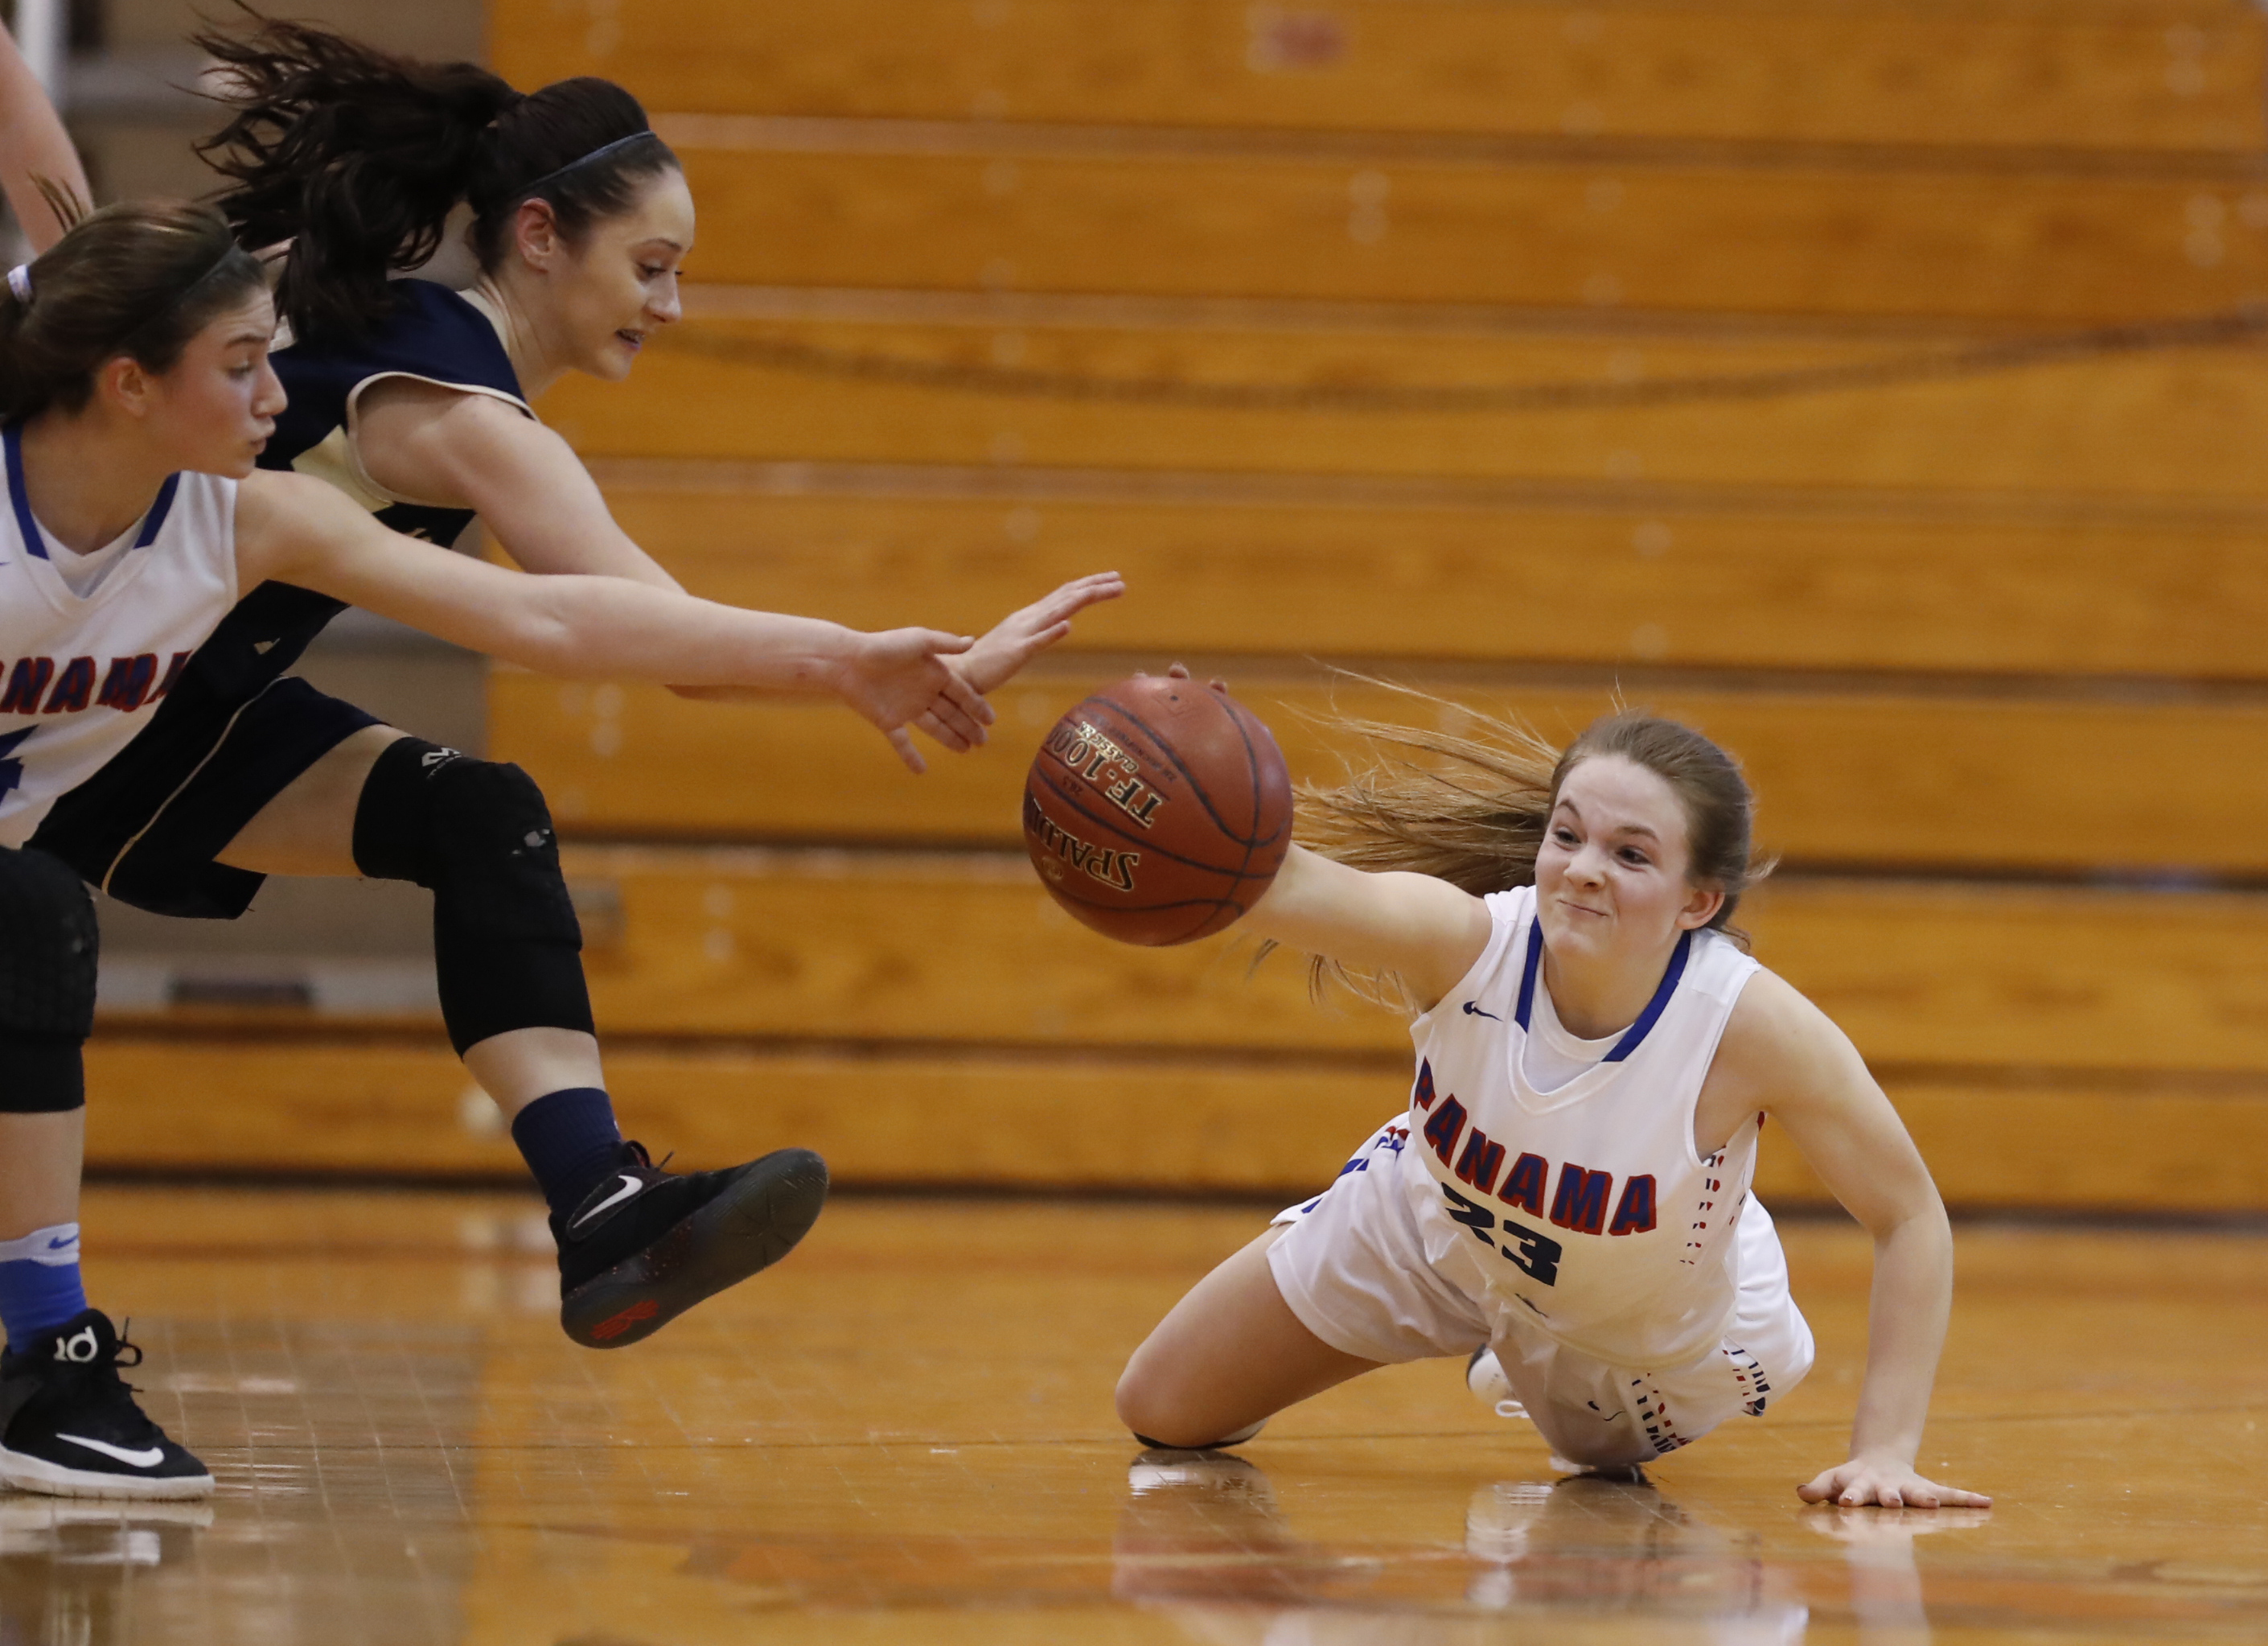 Panama's Madalyn Bowen dives for a loose ball against Batavia Notre Dame during the first half. (Harry Scull Jr./Buffalo News)